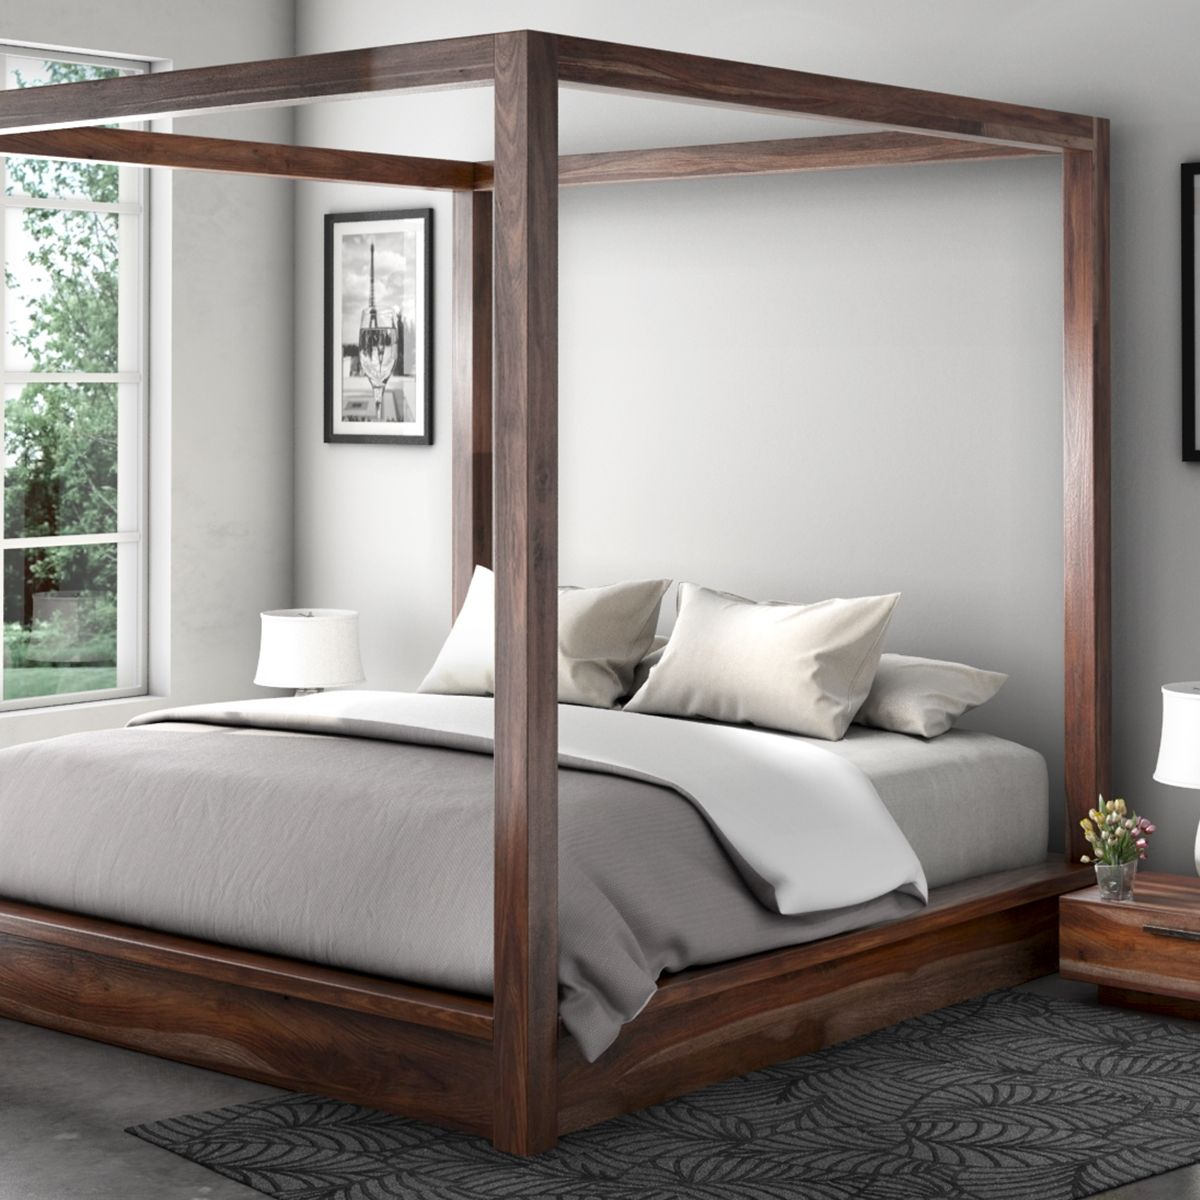 Hampshire Rustic Solid Wood Canopy Bed W Nightstands Solid Wood Platform Bed Canopy Bed Frame Wood Platform Bed